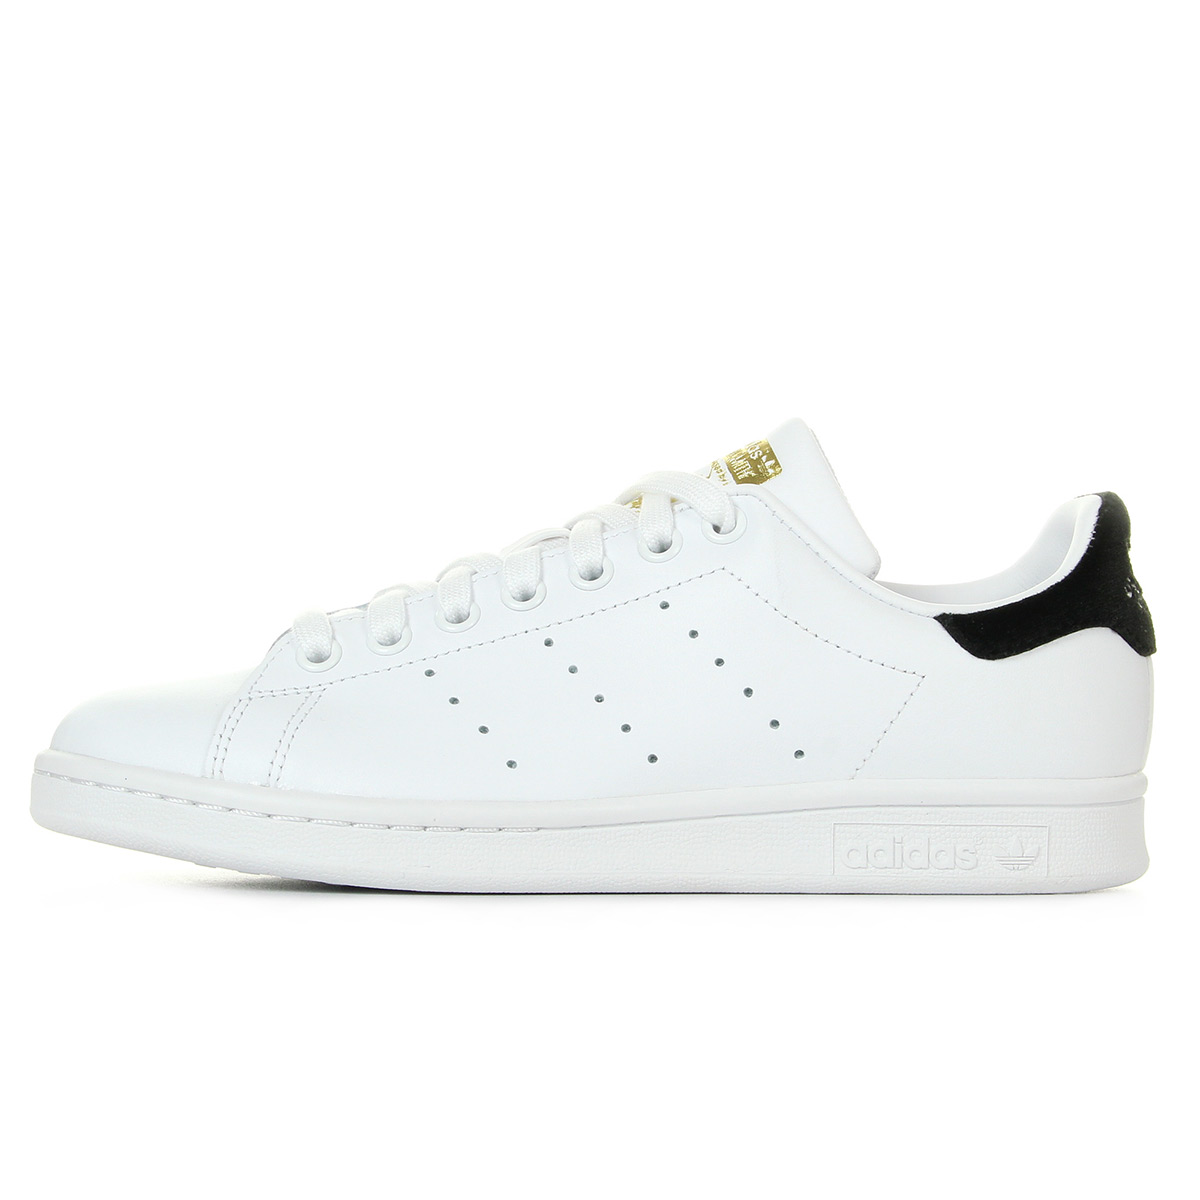 907a5730bf1 Photos À Vendre adidas Stan Smith BY9985 Baskets mode Liquidations ...